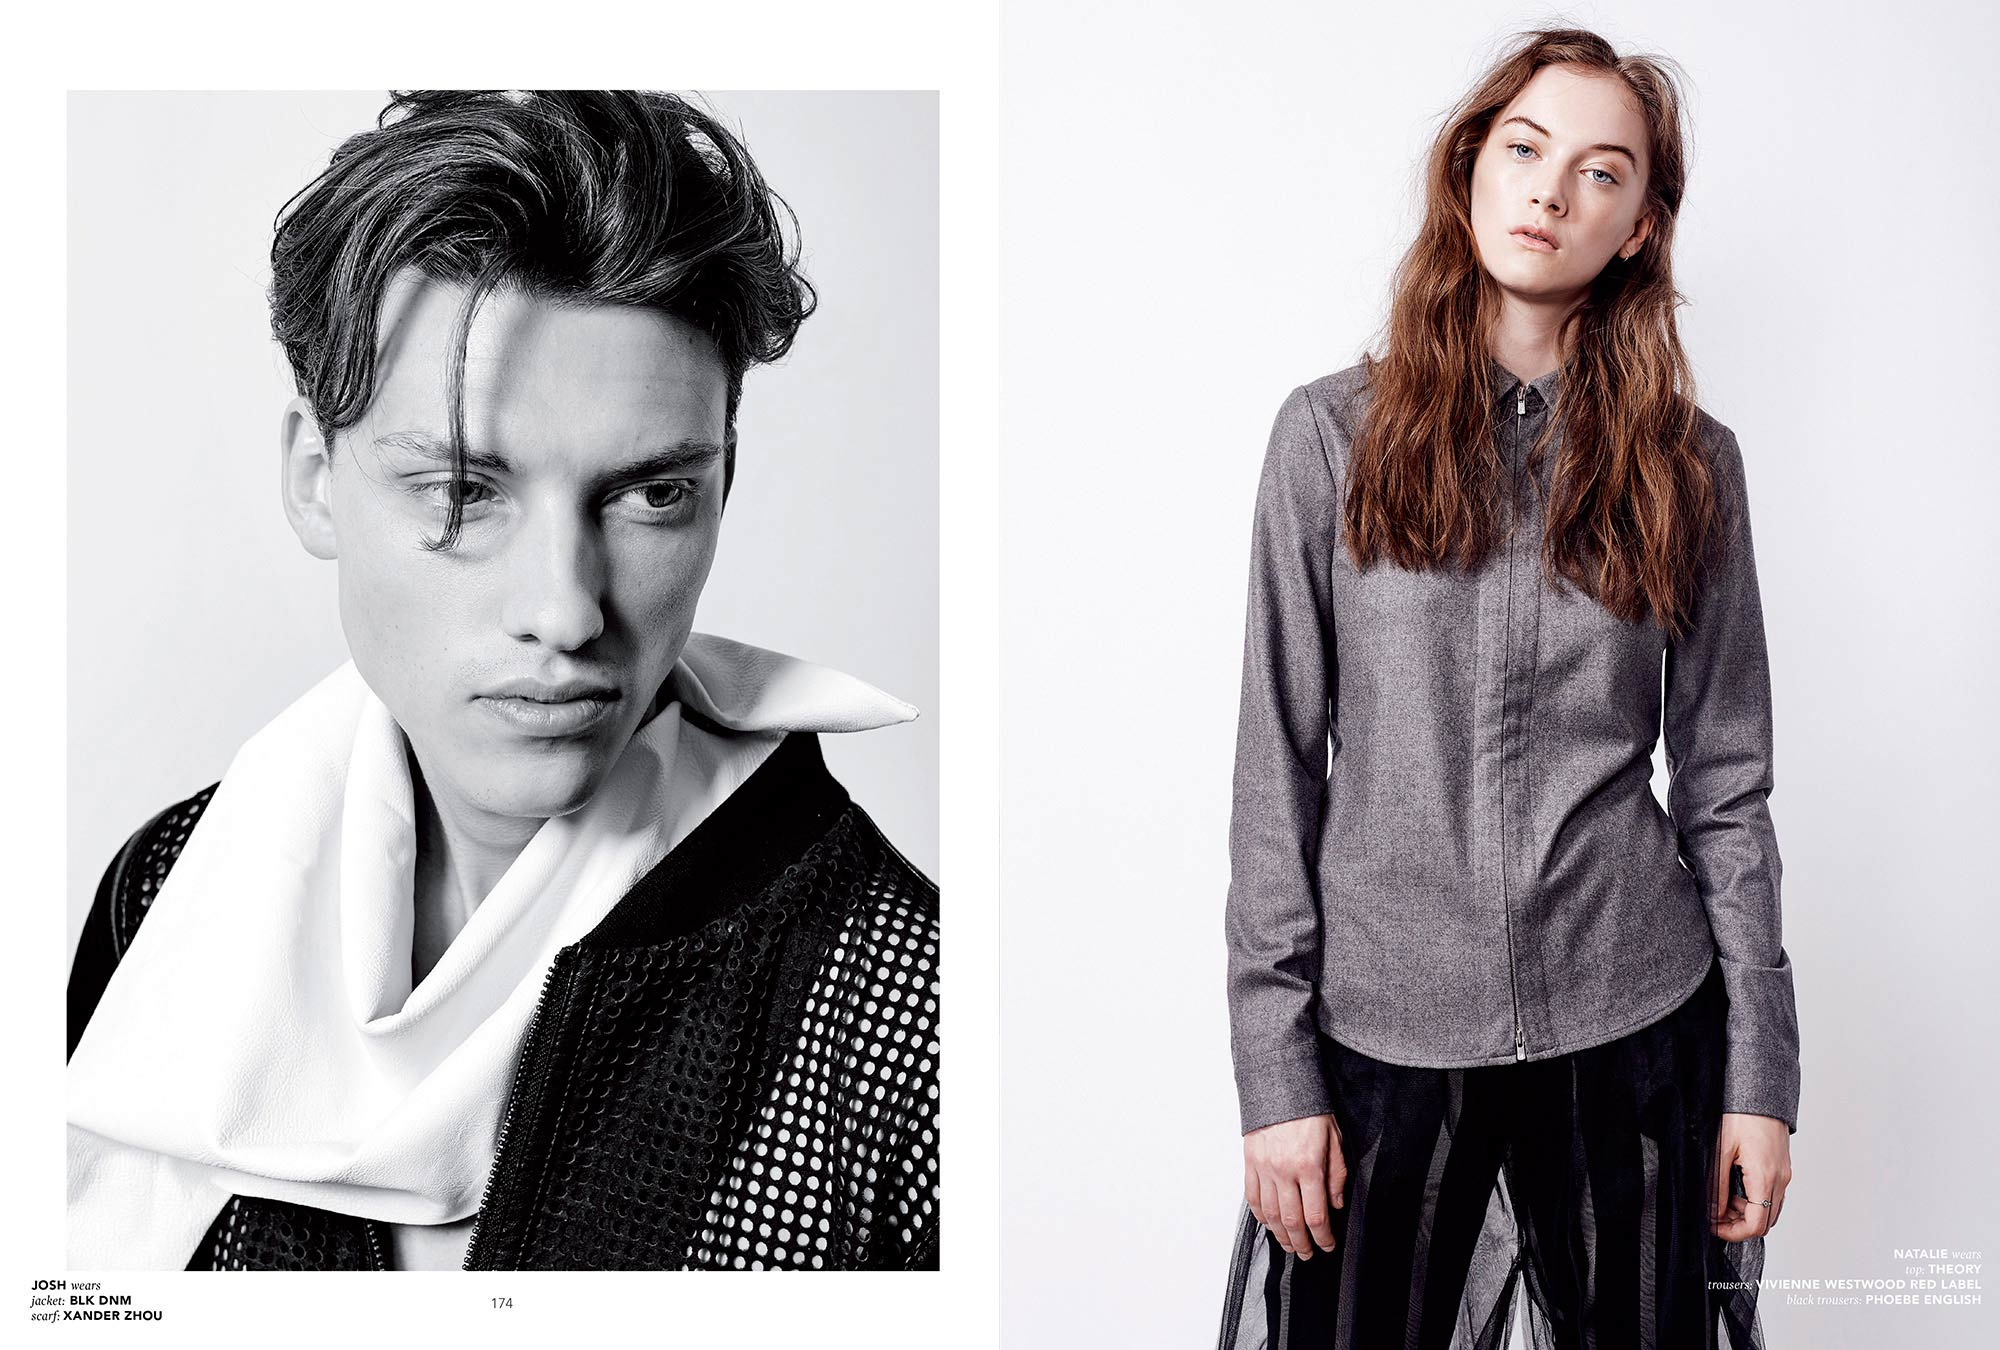 Florian renner streets mag aw15 04